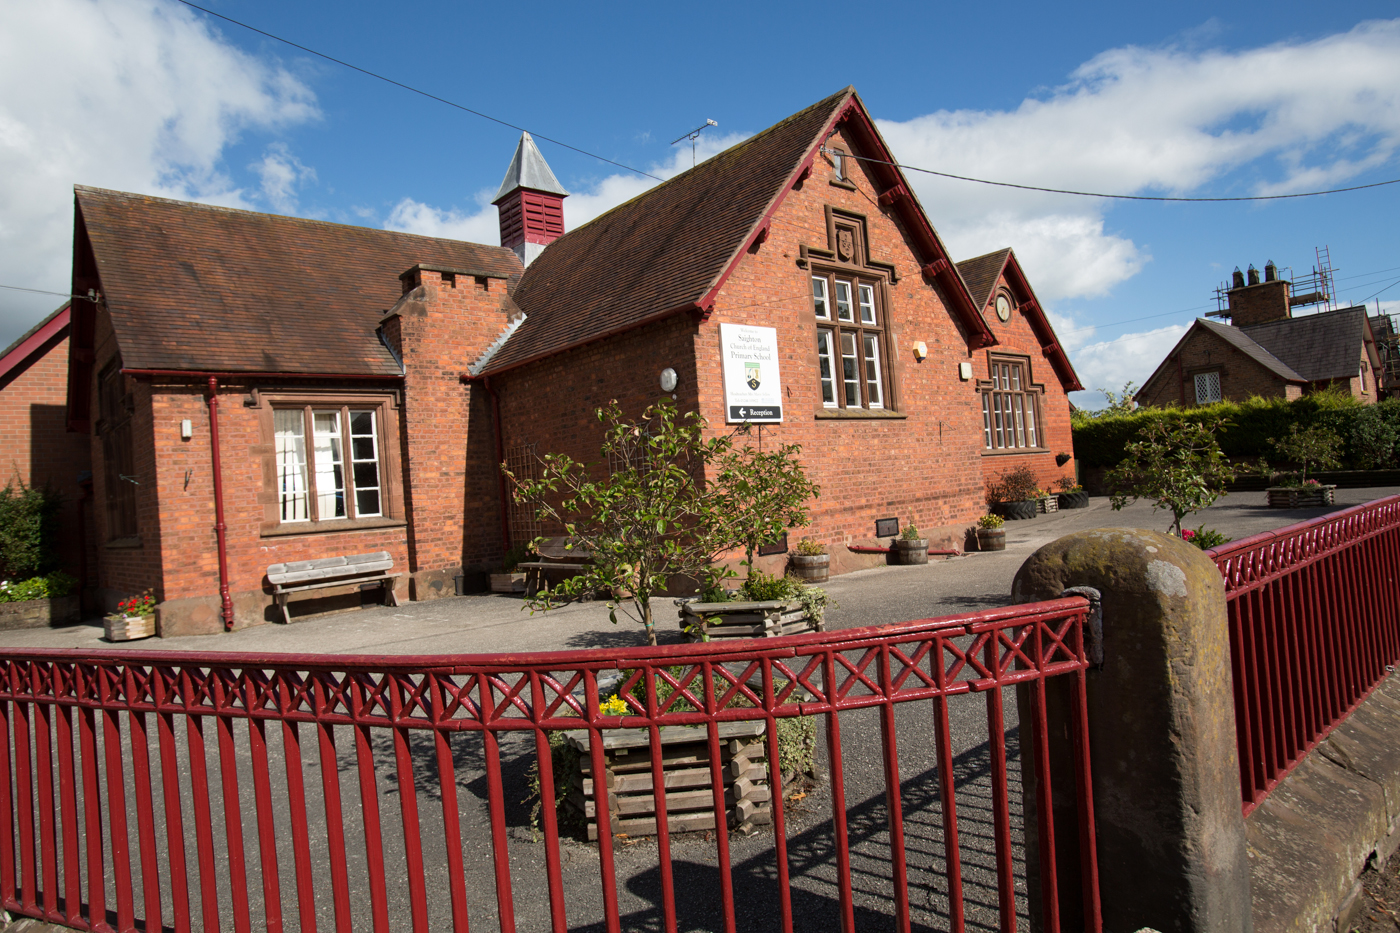 Village of Saighton, Cheshire, England. Picturesque view of Saighton's Church of England Primary School. The majority of the properties in the village belong to the Duke of Westminster Estate.